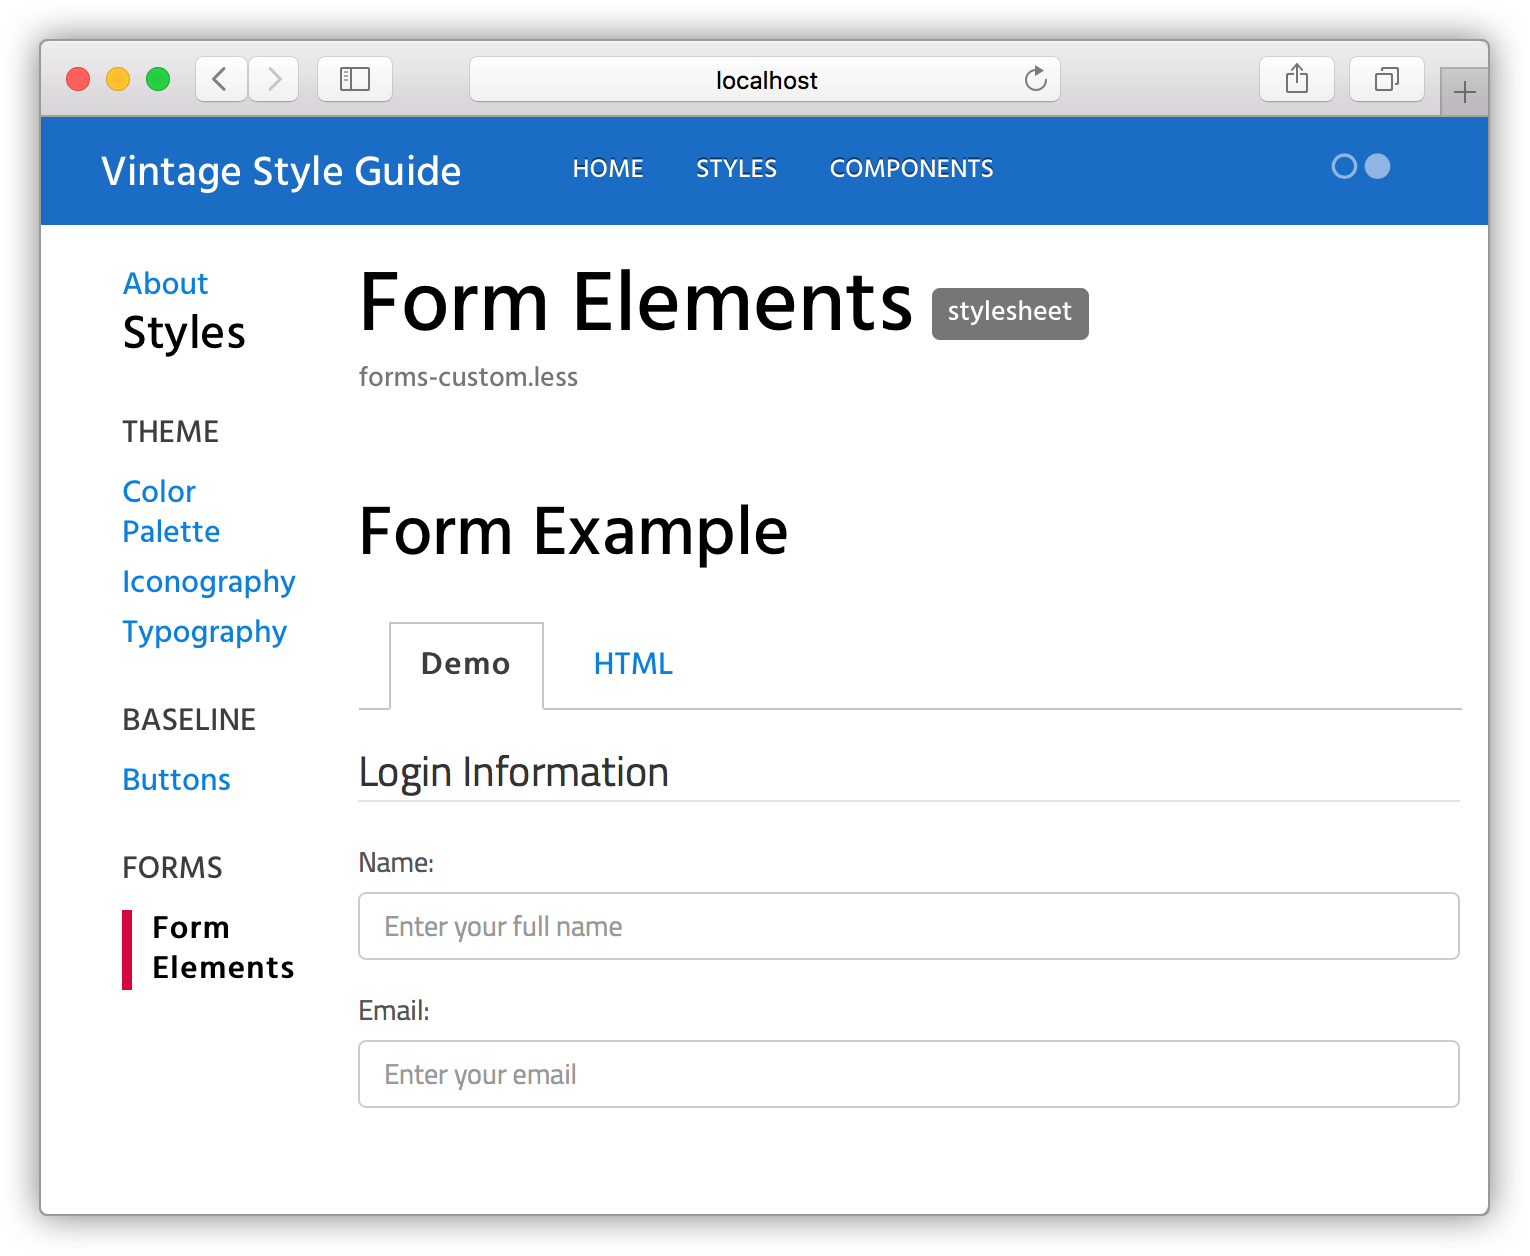 style-guide-forms.png